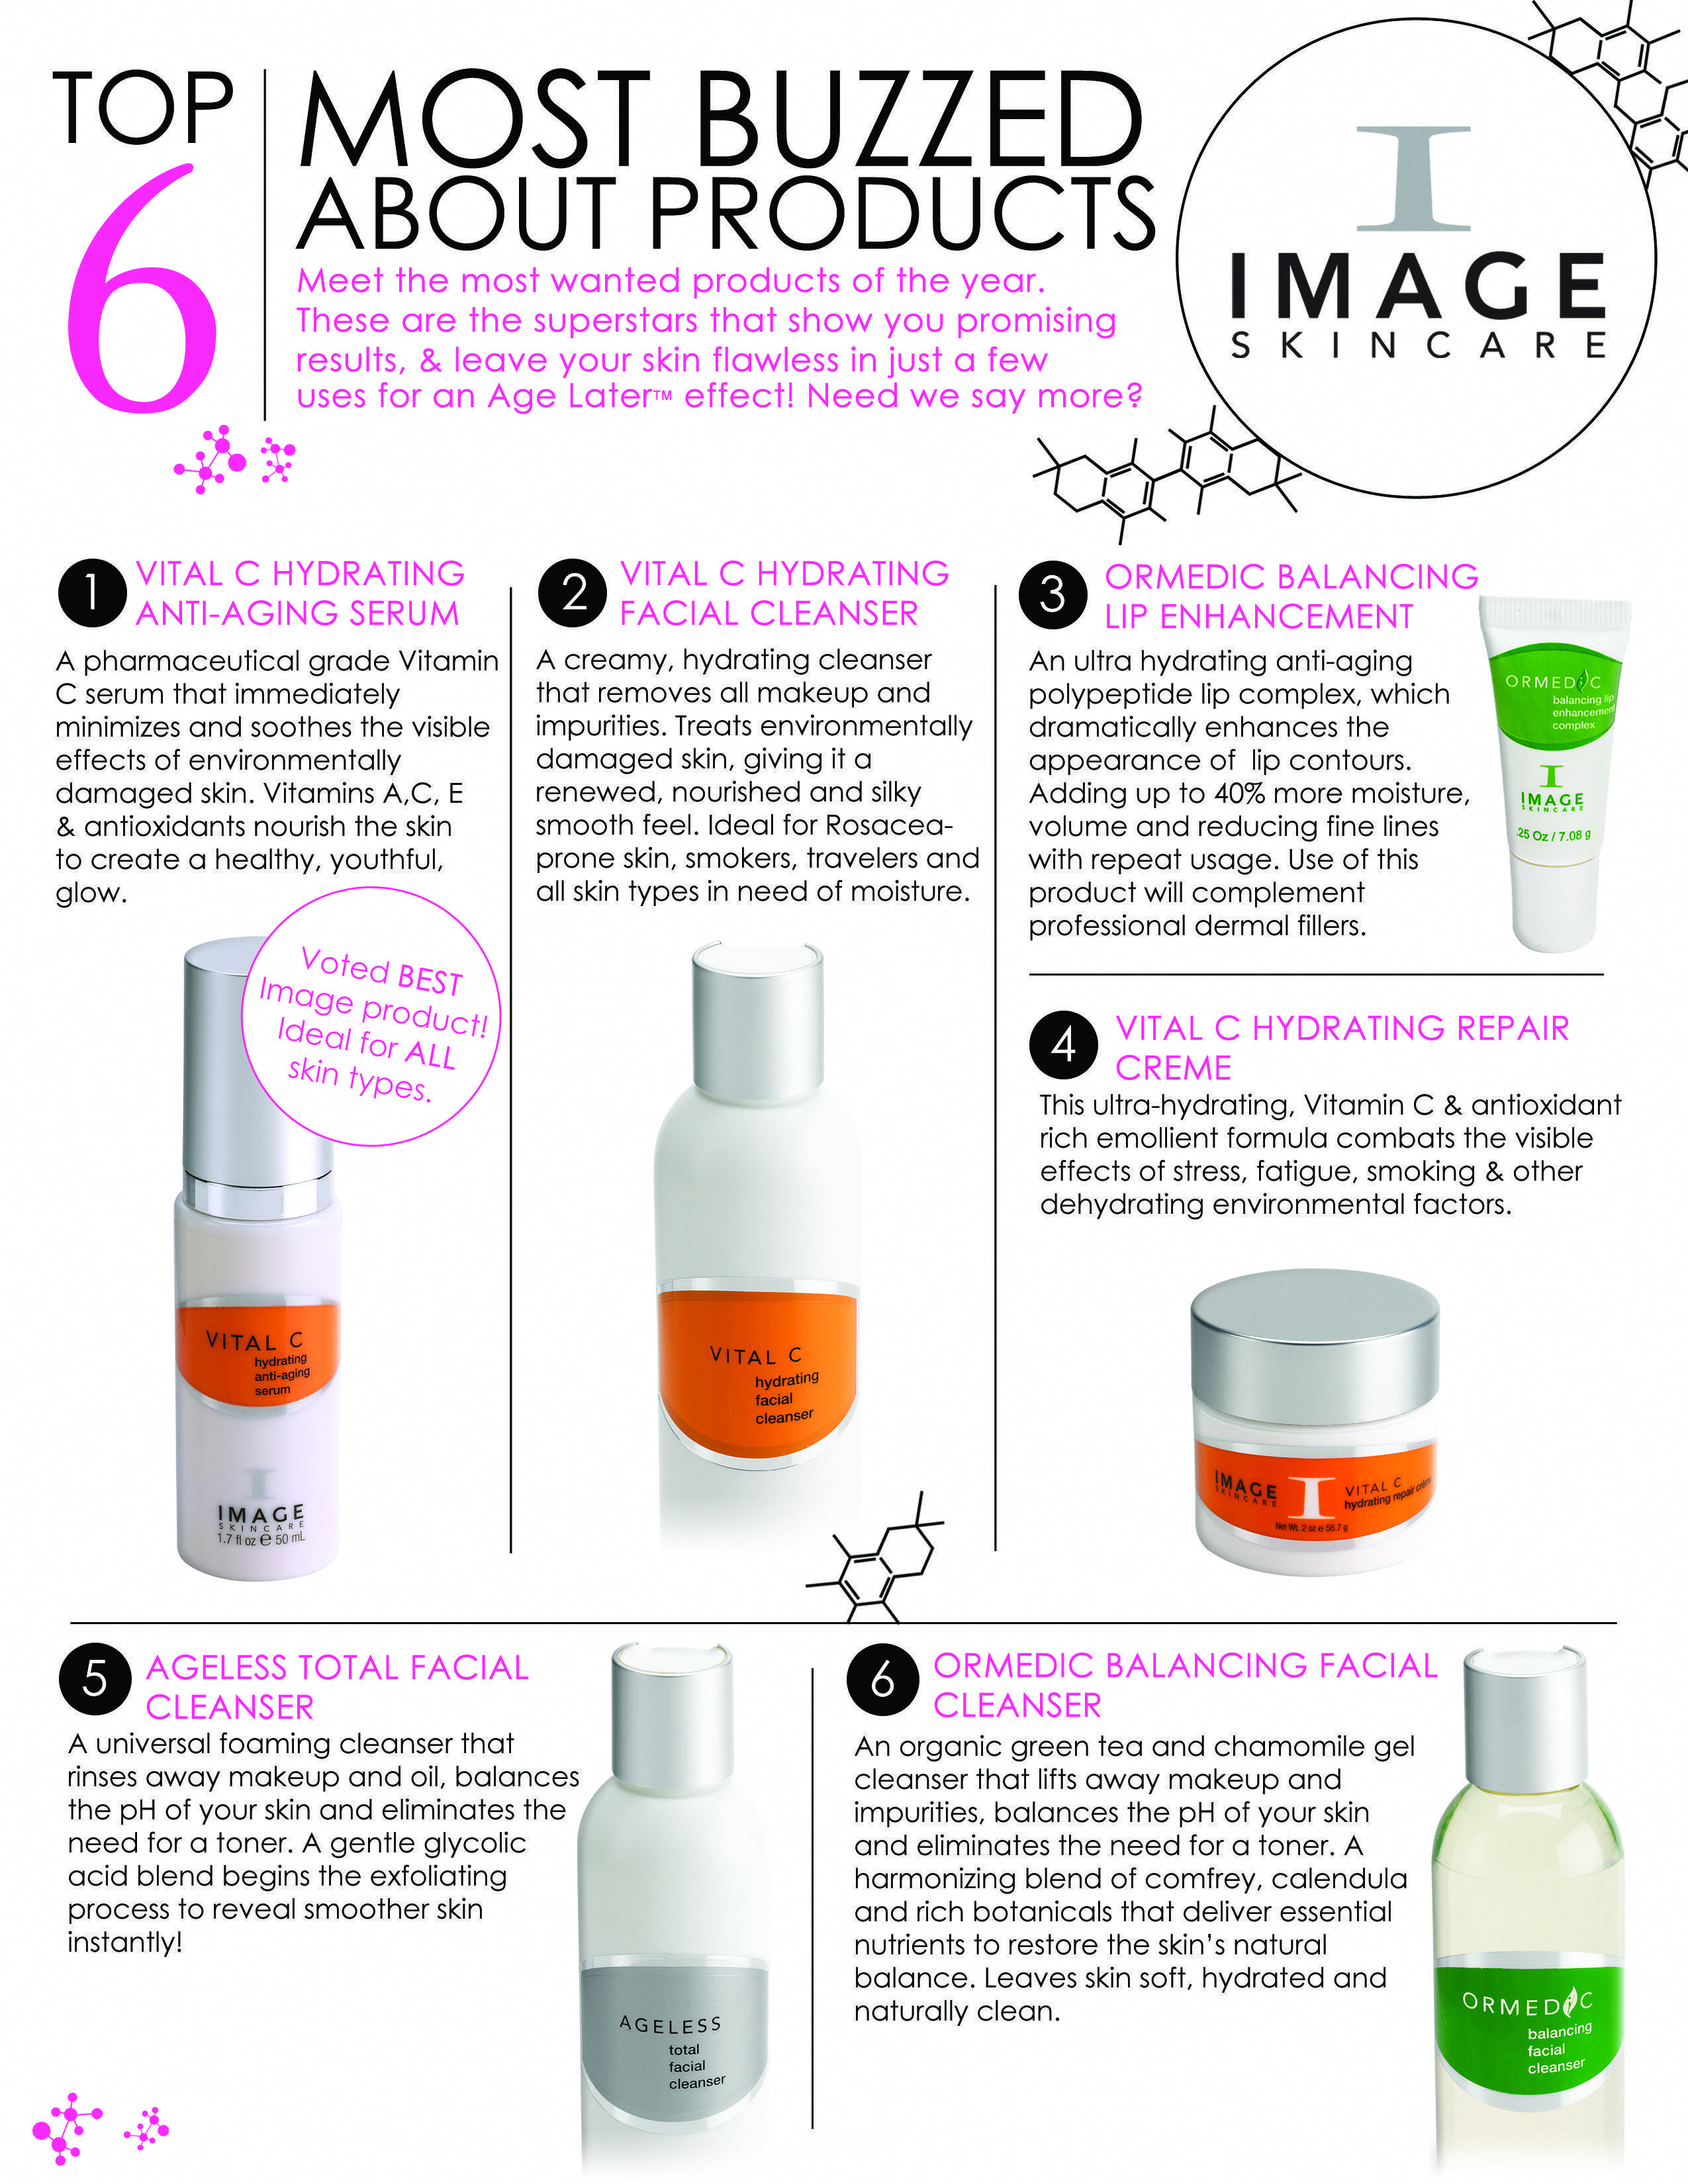 Top 6 Products From Image Skincare Line Facialtreatmentsprofessional Image Skincare Skin Care Skin Care Spa